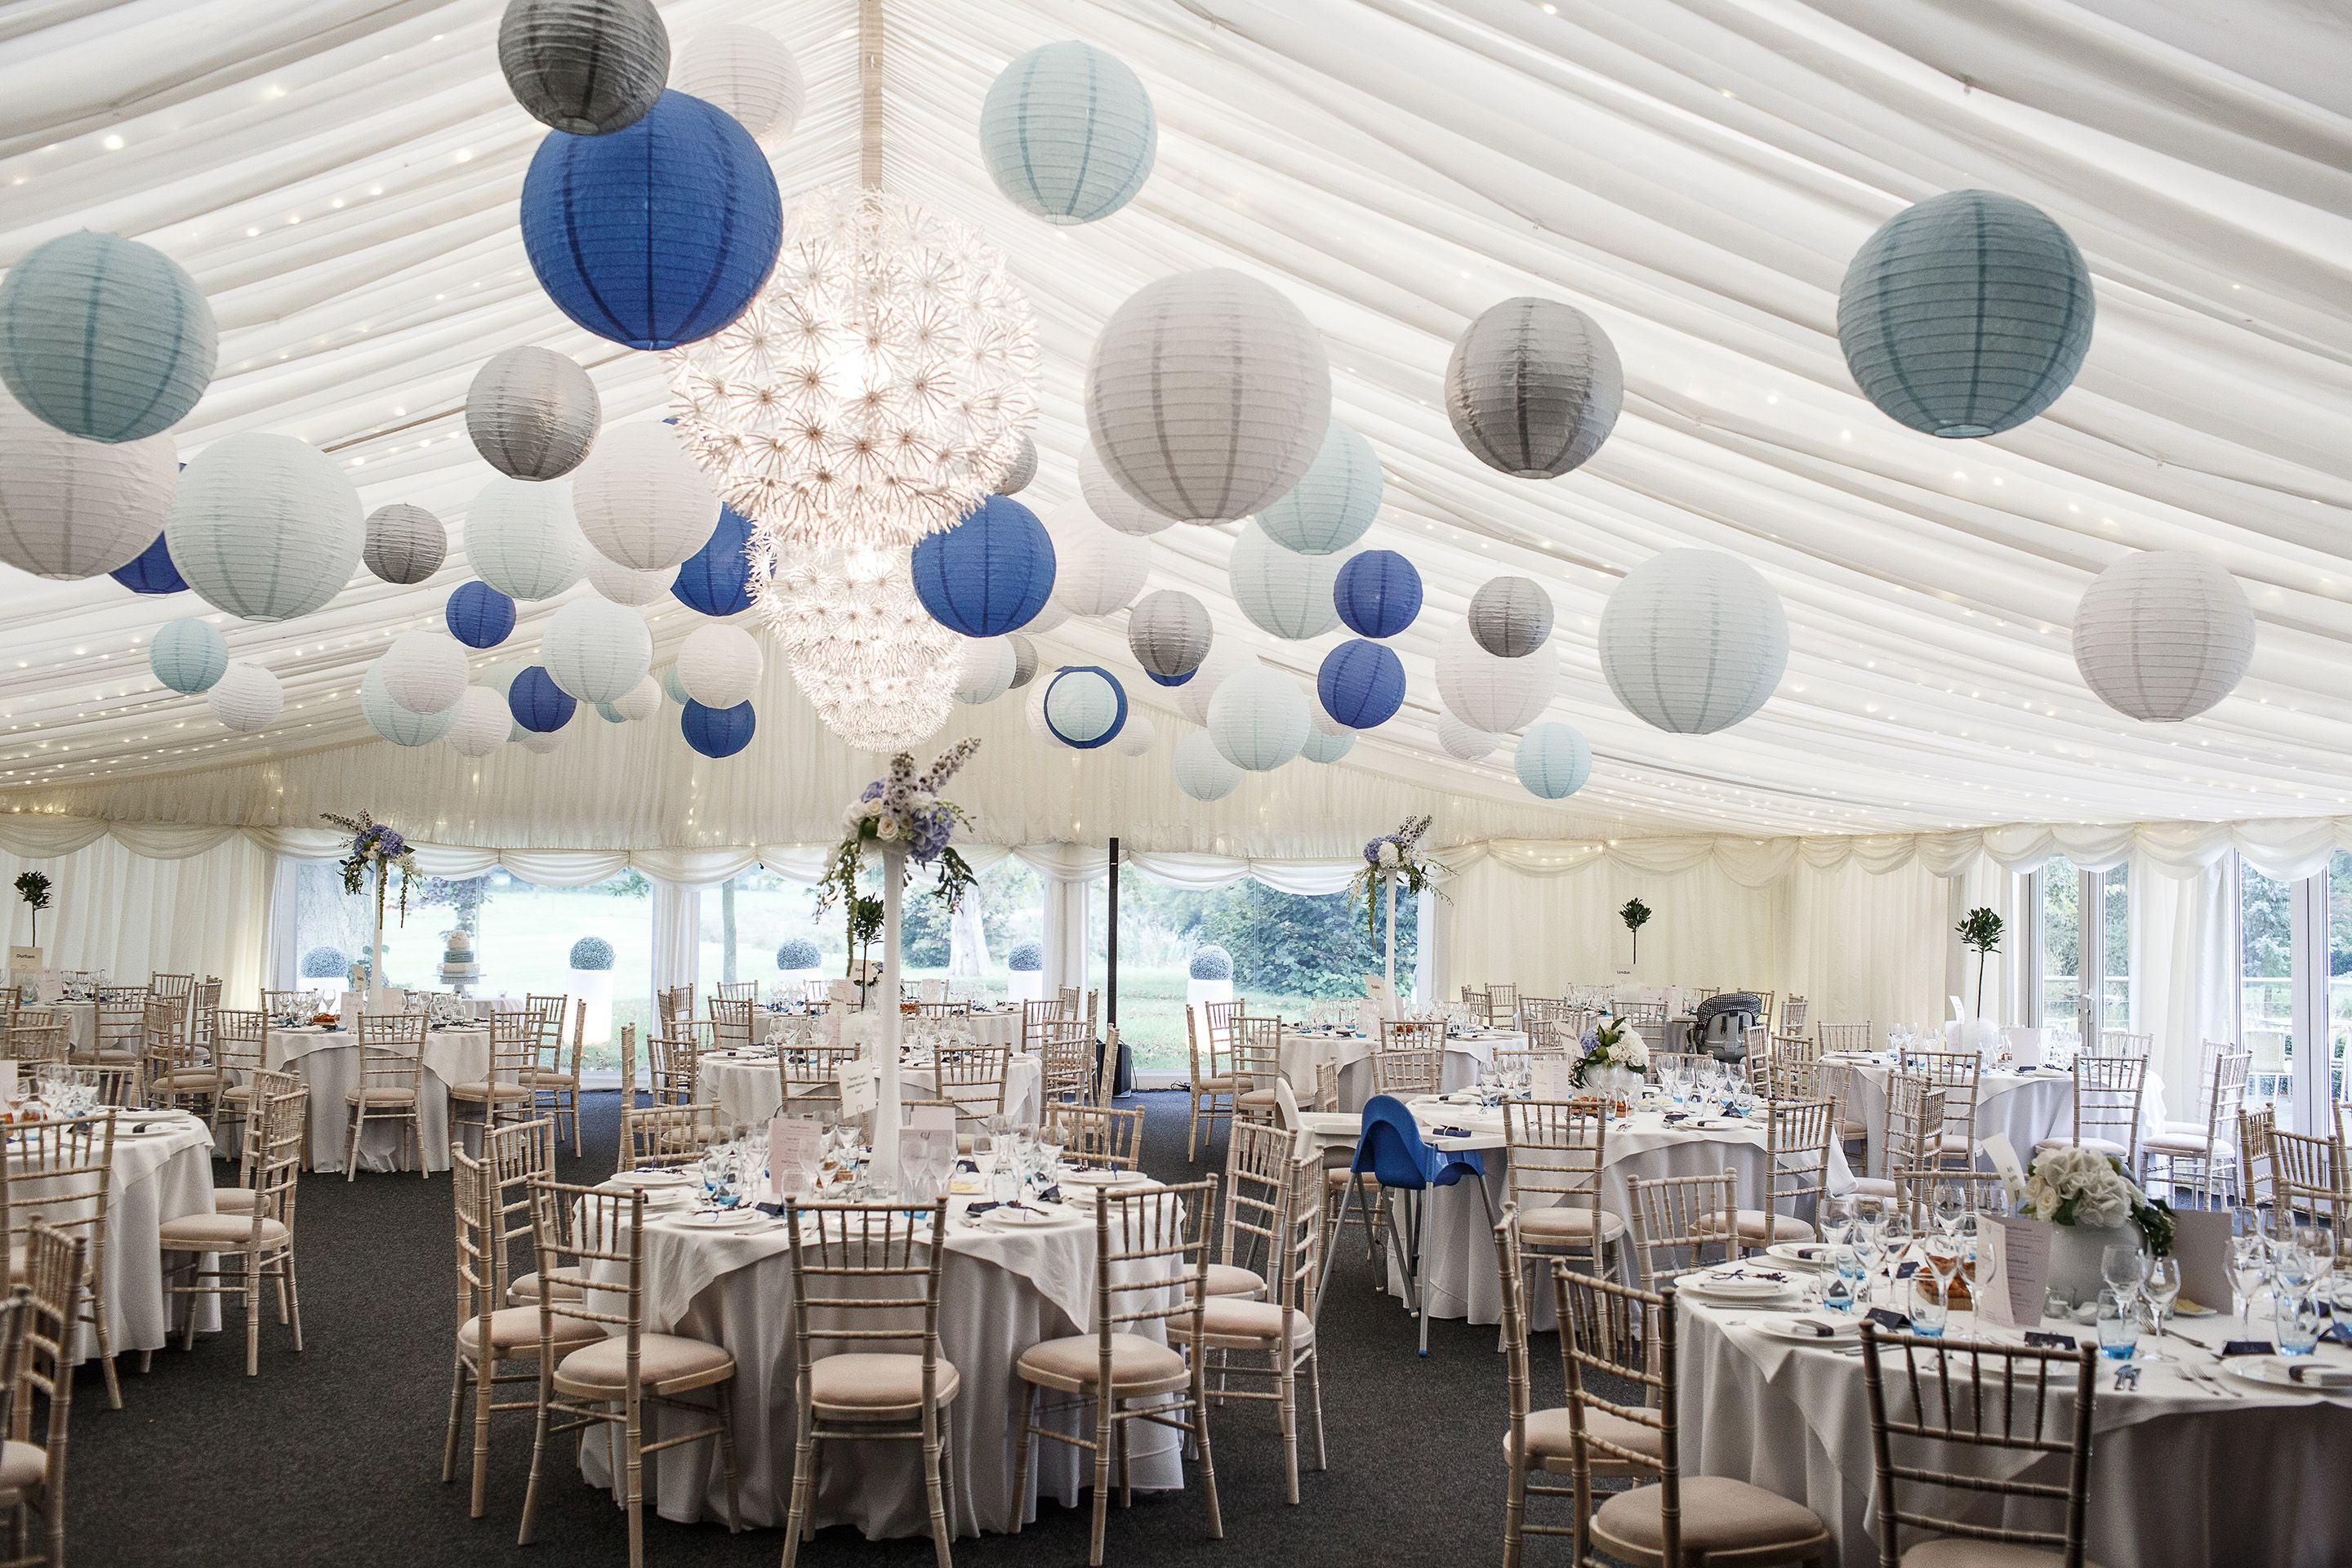 Blue, Ice, White and Silver paper lanterns make this frosty scene ...